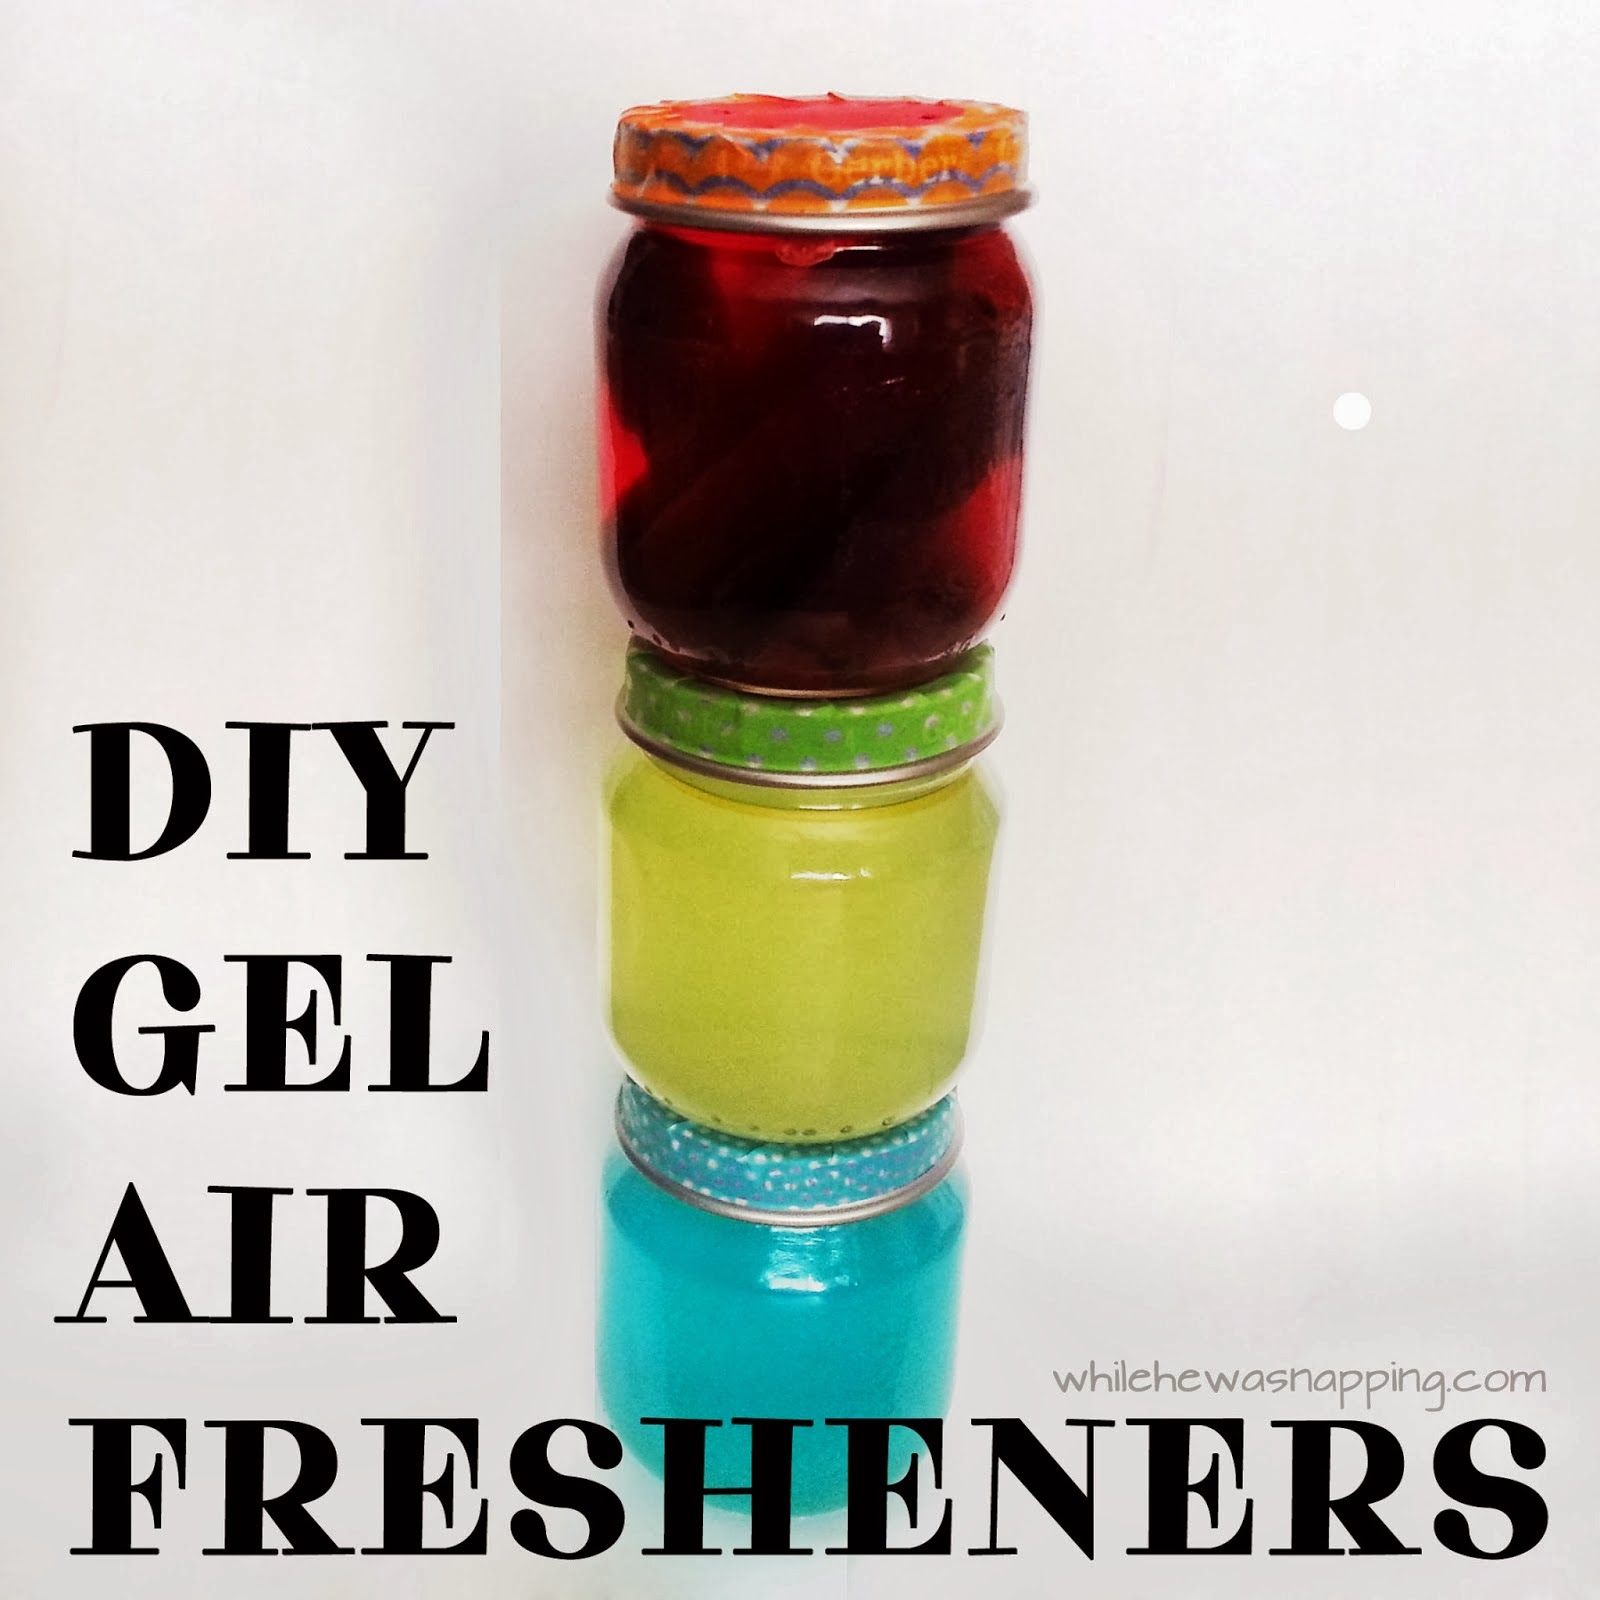 http://www.whilehewasnapping.com/2014/01/diy-gel-air-fresheners.html